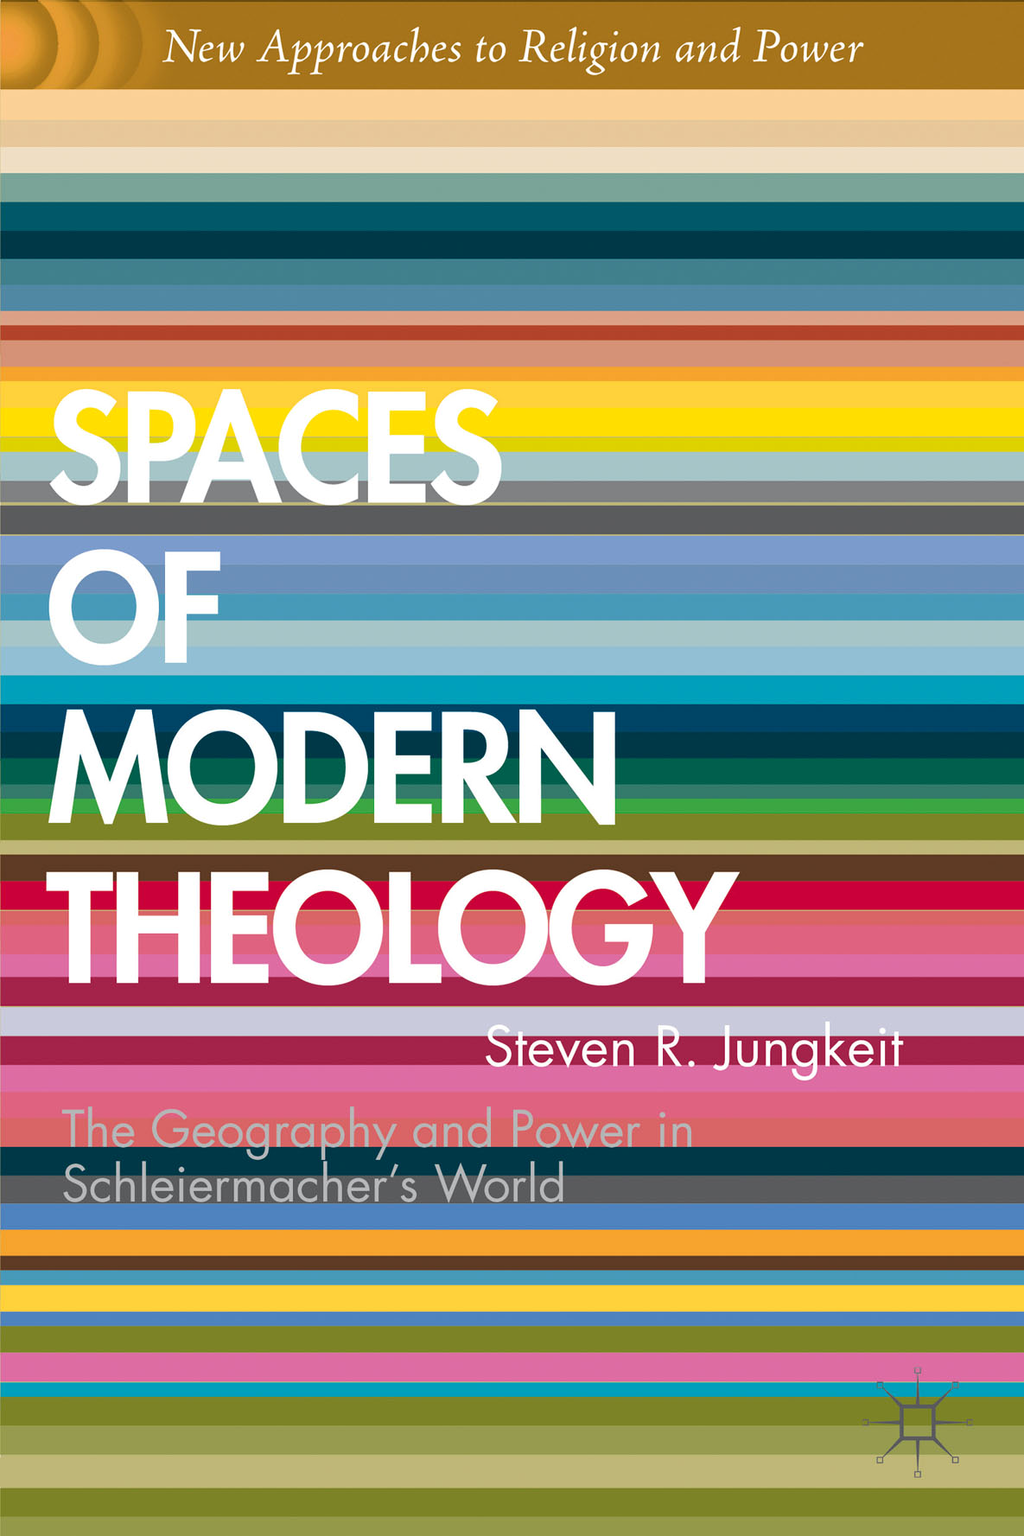 Spaces of Modern Theology Geography and Power in Schleiermacher?s World